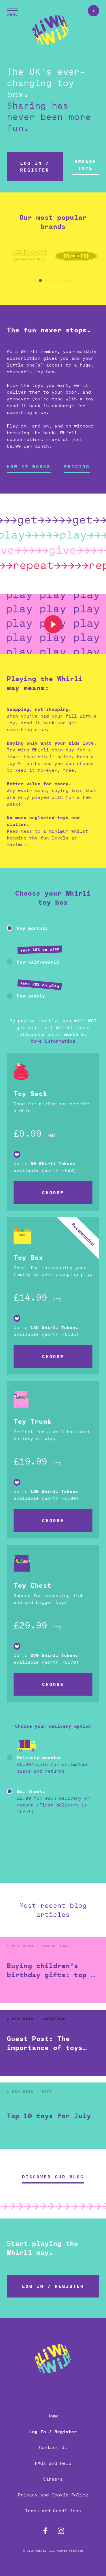 Example of Design for Shopping, Toys, Mobile Landing Page by whirli.com | Mobile Landing Page Design